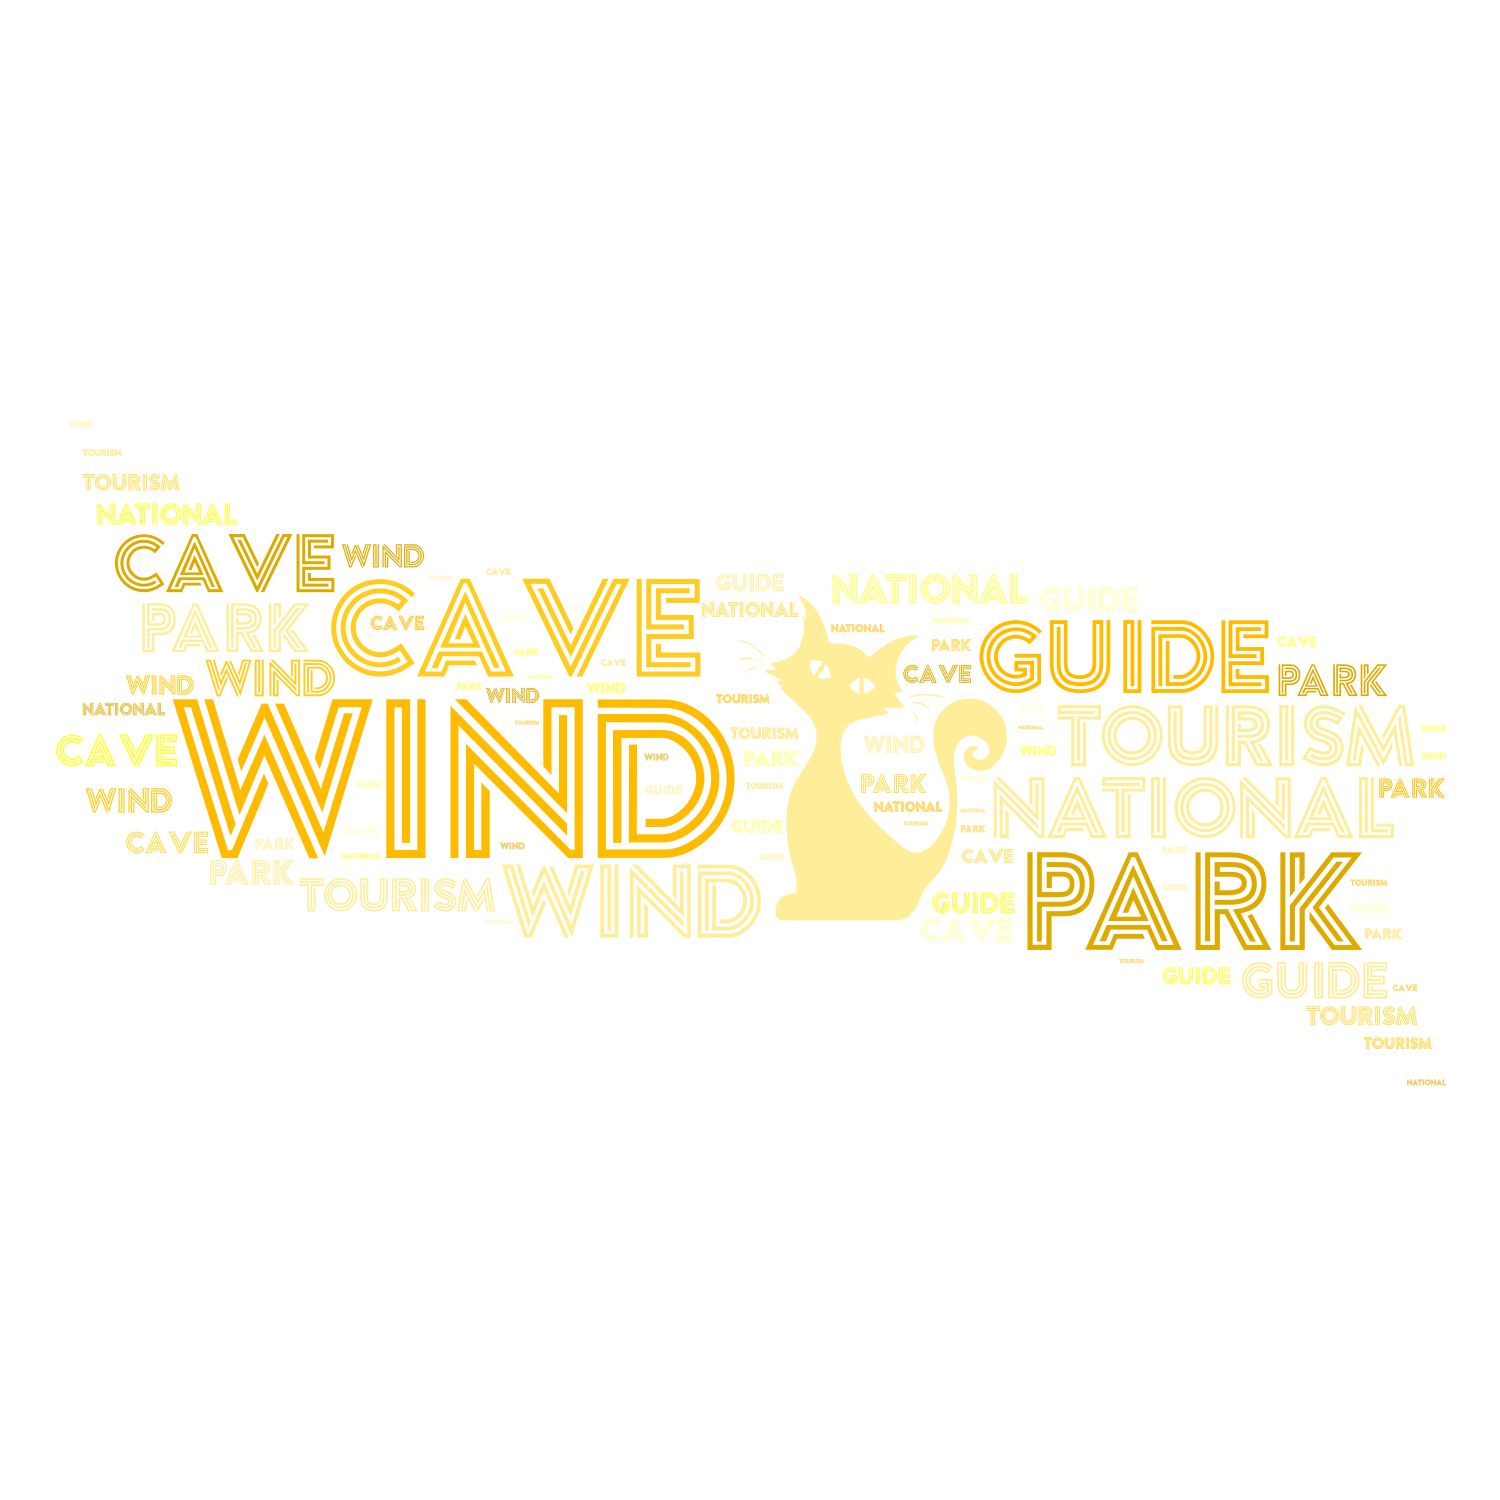 Wind Cave National Park Tourism Guide